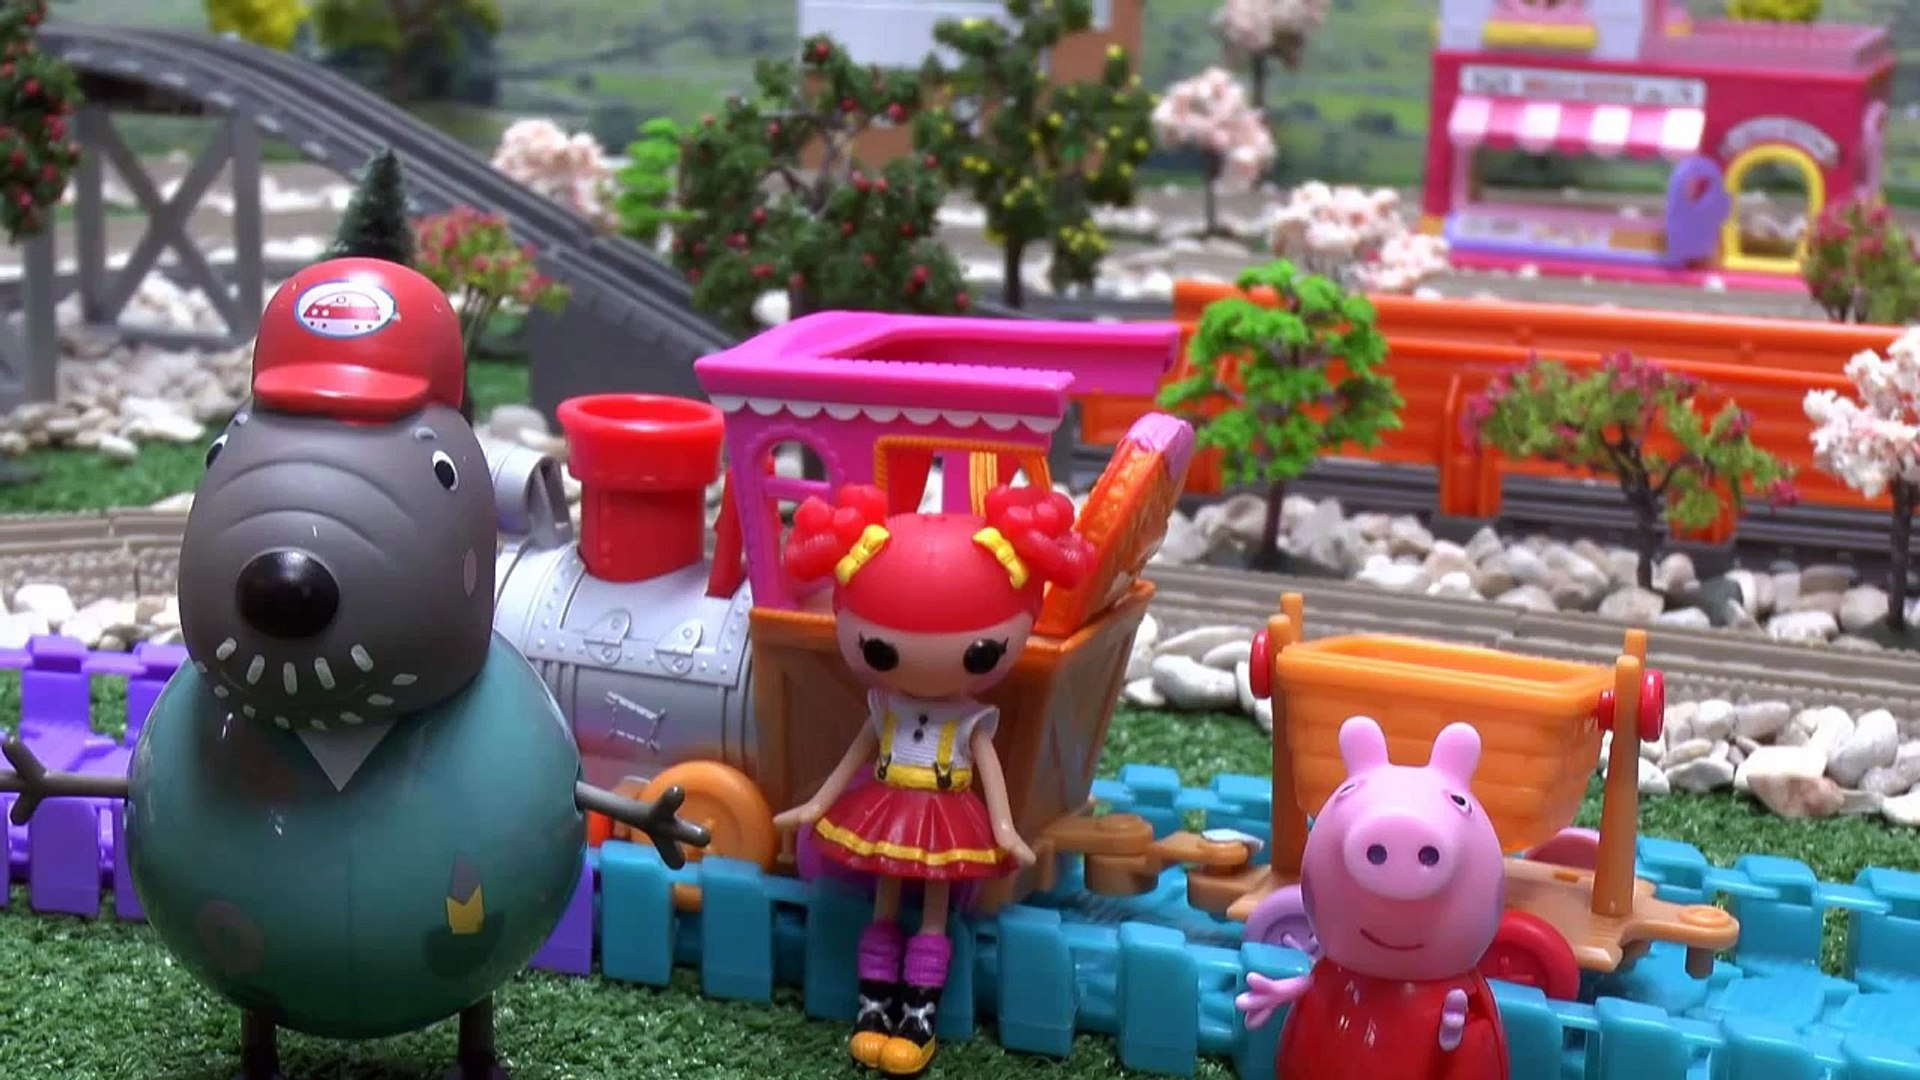 Peppa Pig Lalaloopsy Pocoyo Toy Thomas & Friends Kids Train Story Ember Flicker Flame Hell